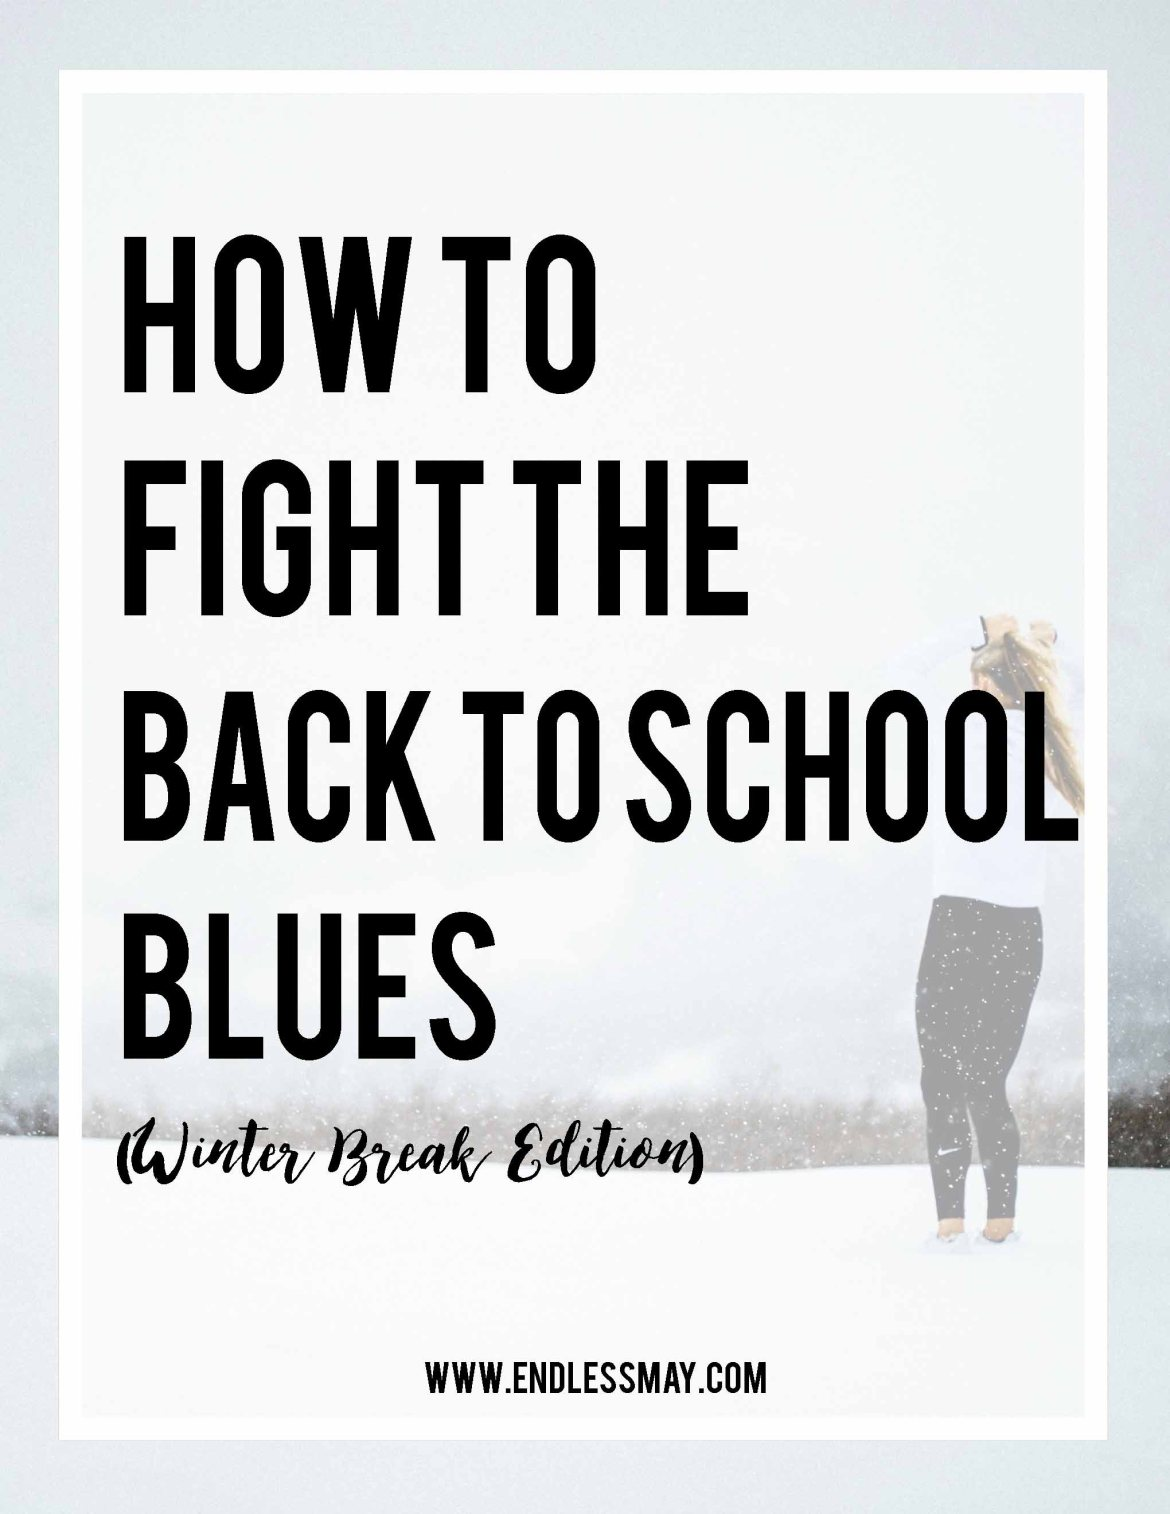 Heading back to school after winter break can sometimes make you blue! Here are ways to make going back easier.